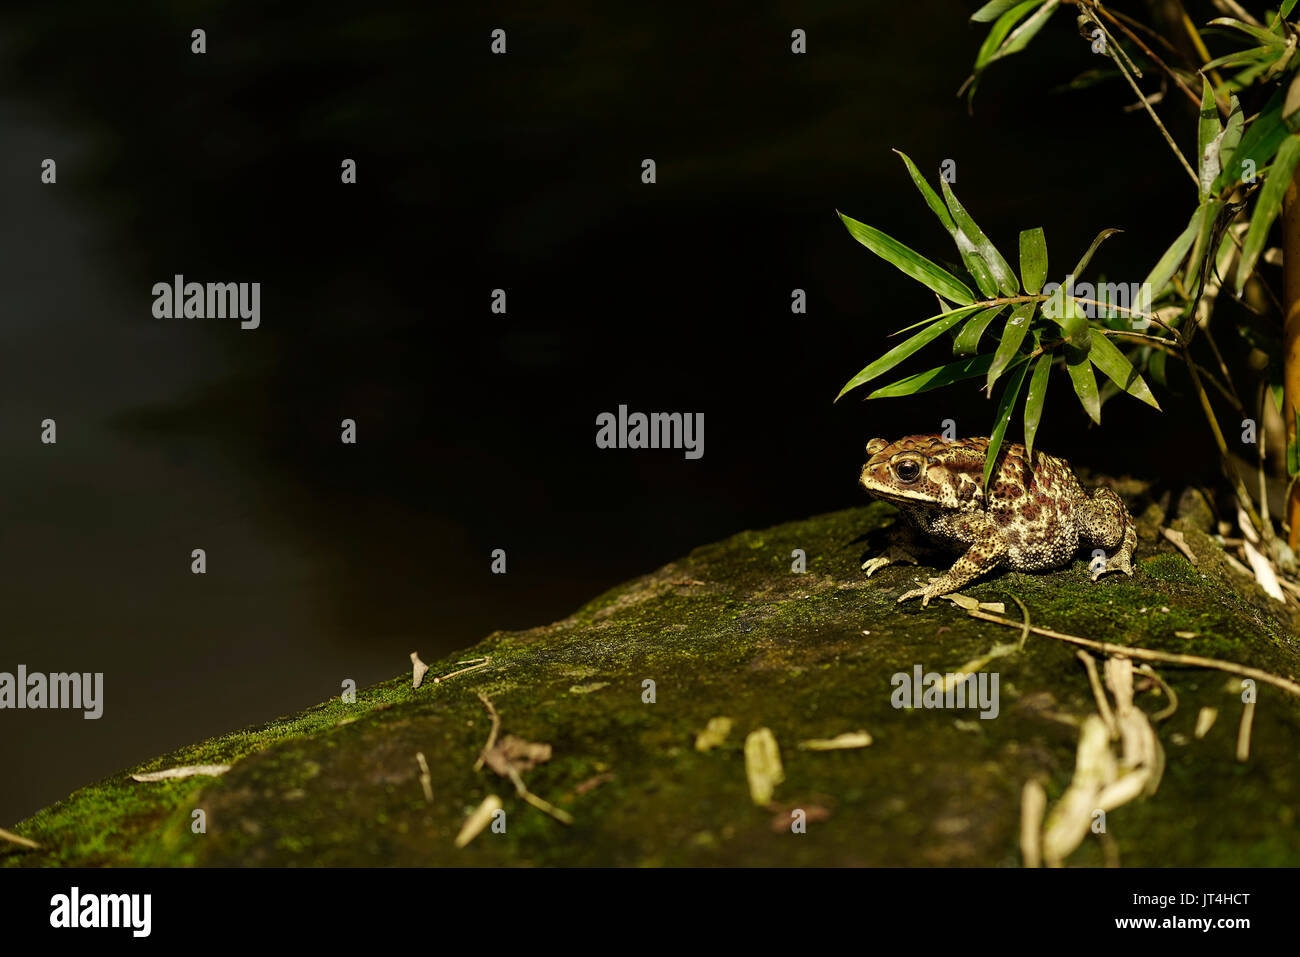 Brown fat frog sitting at the corner of a lake on a rock with green moss underneath leaves during the day. - Stock Image